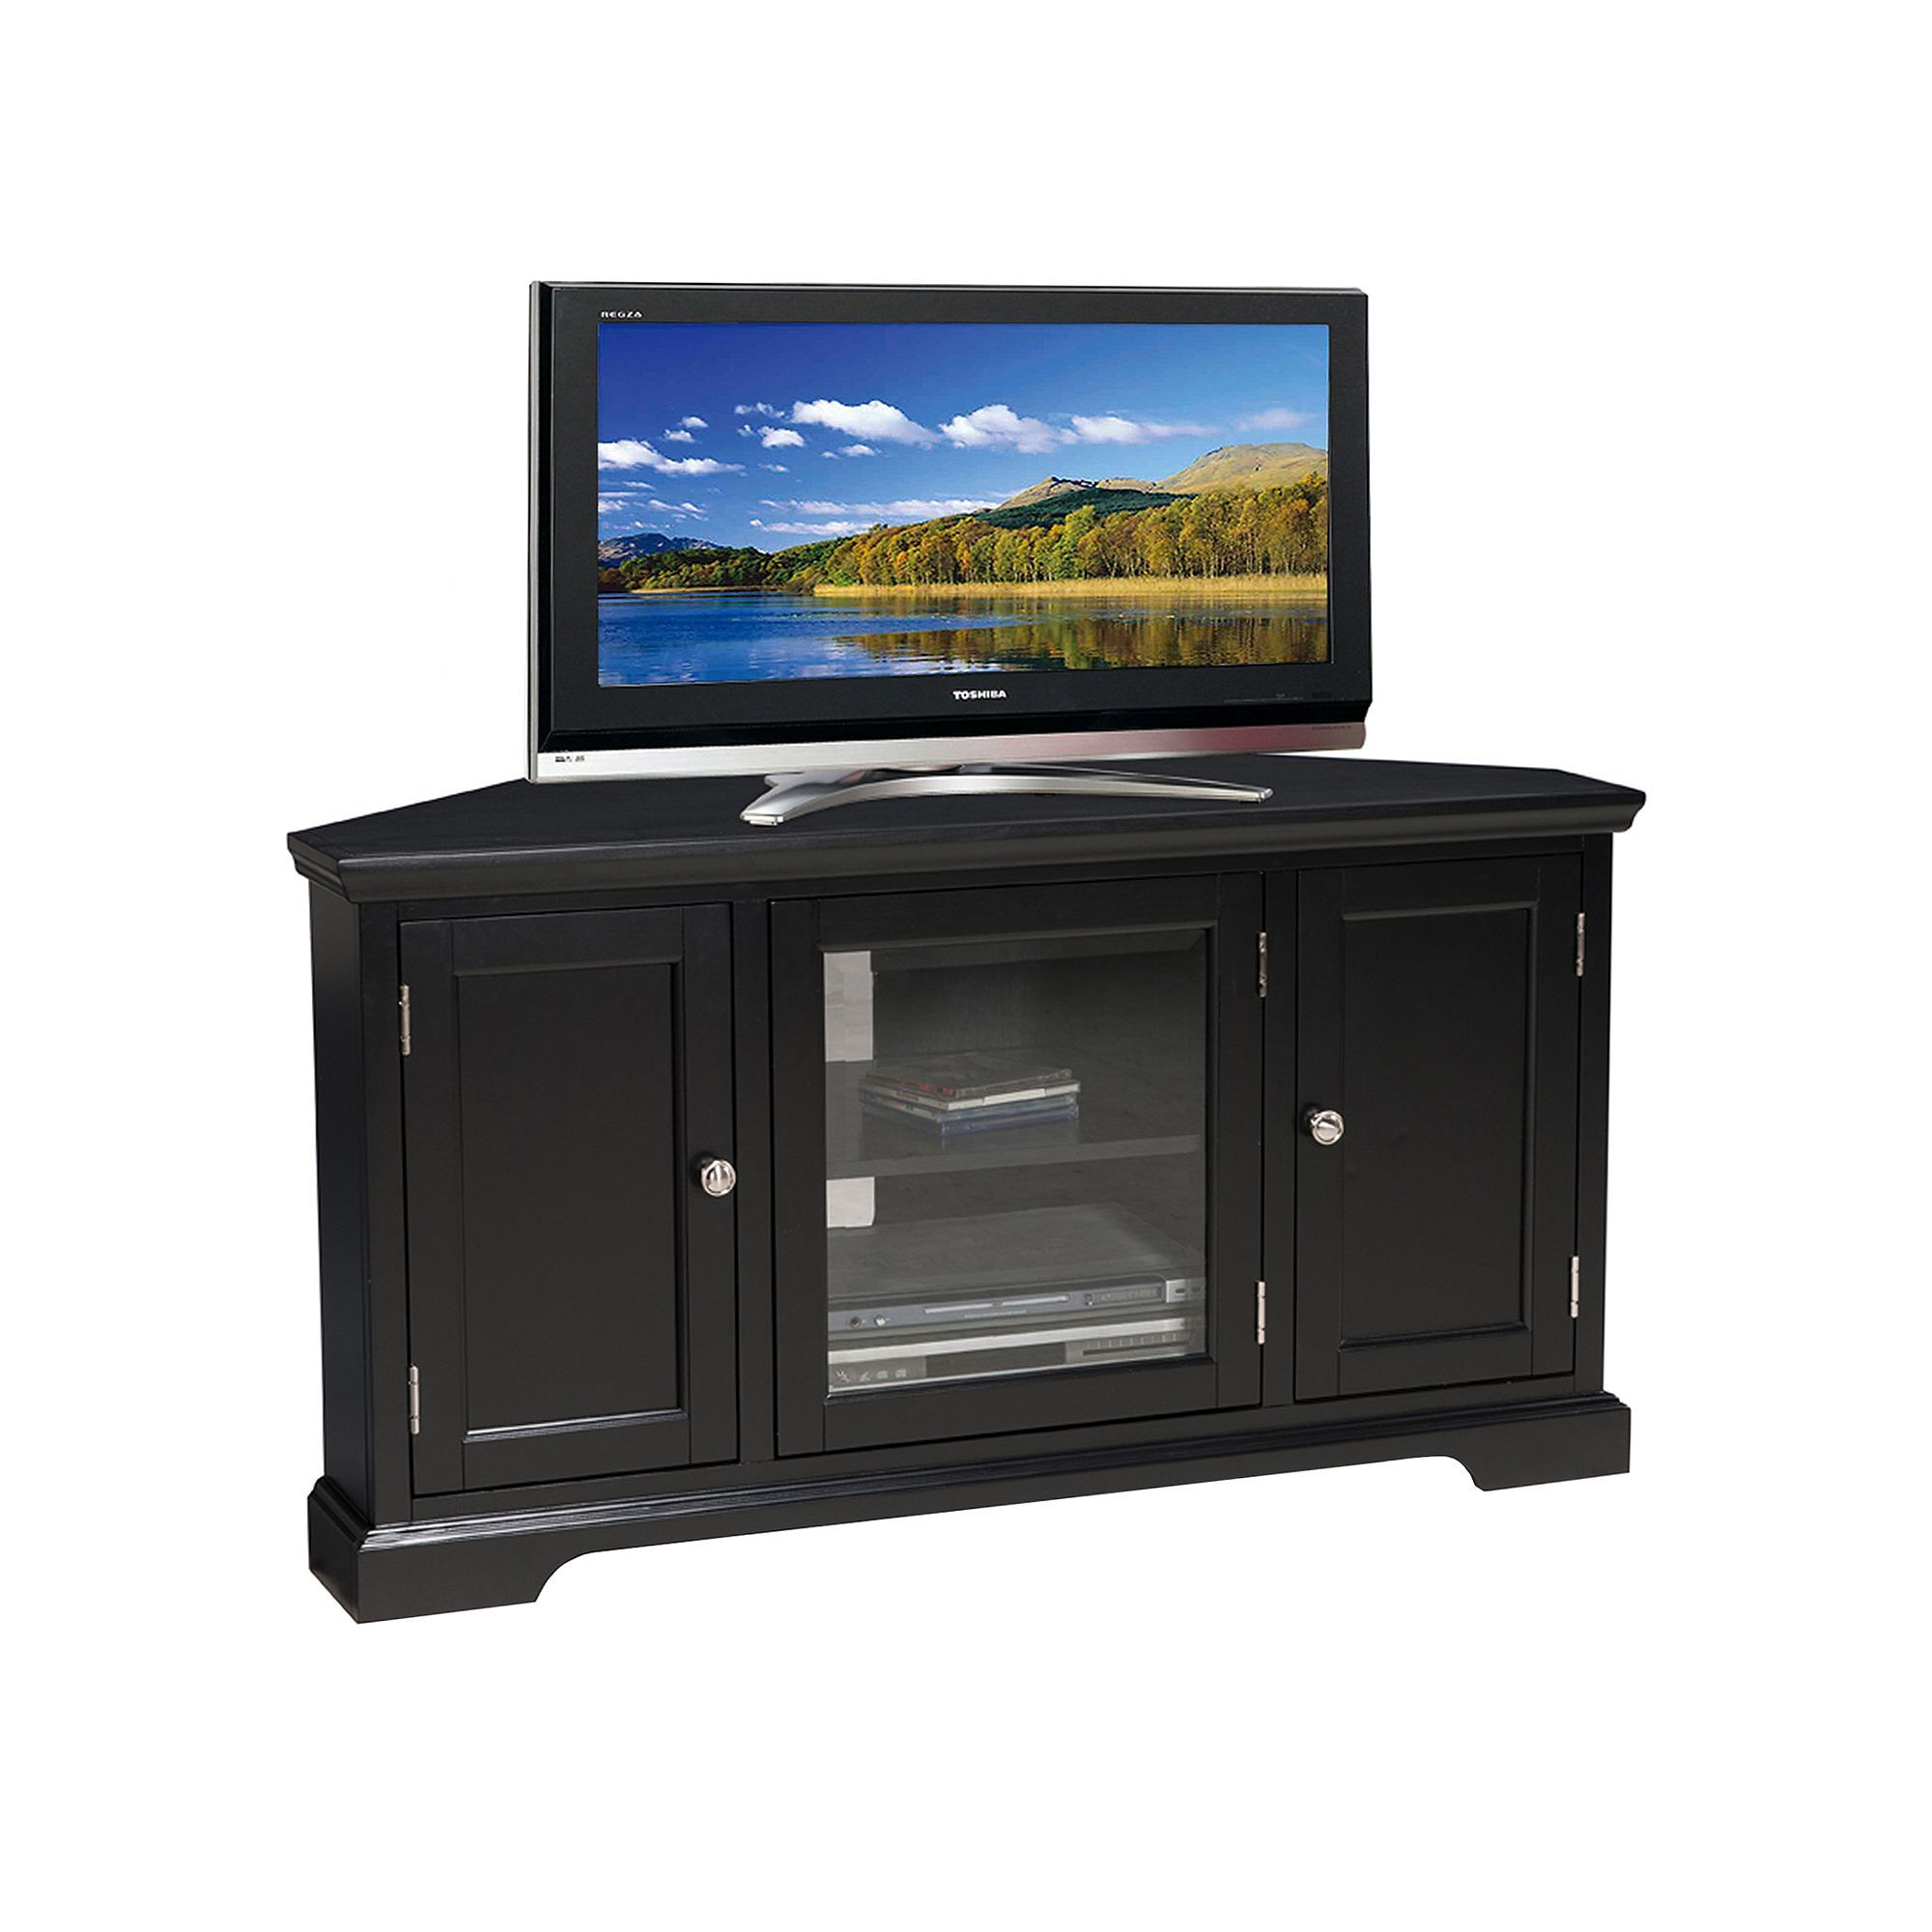 0d3ace313faa45358b58d54f16b19856 Top Result 50 Awesome Corner Electric Fireplace Pic 2018 Jdt4